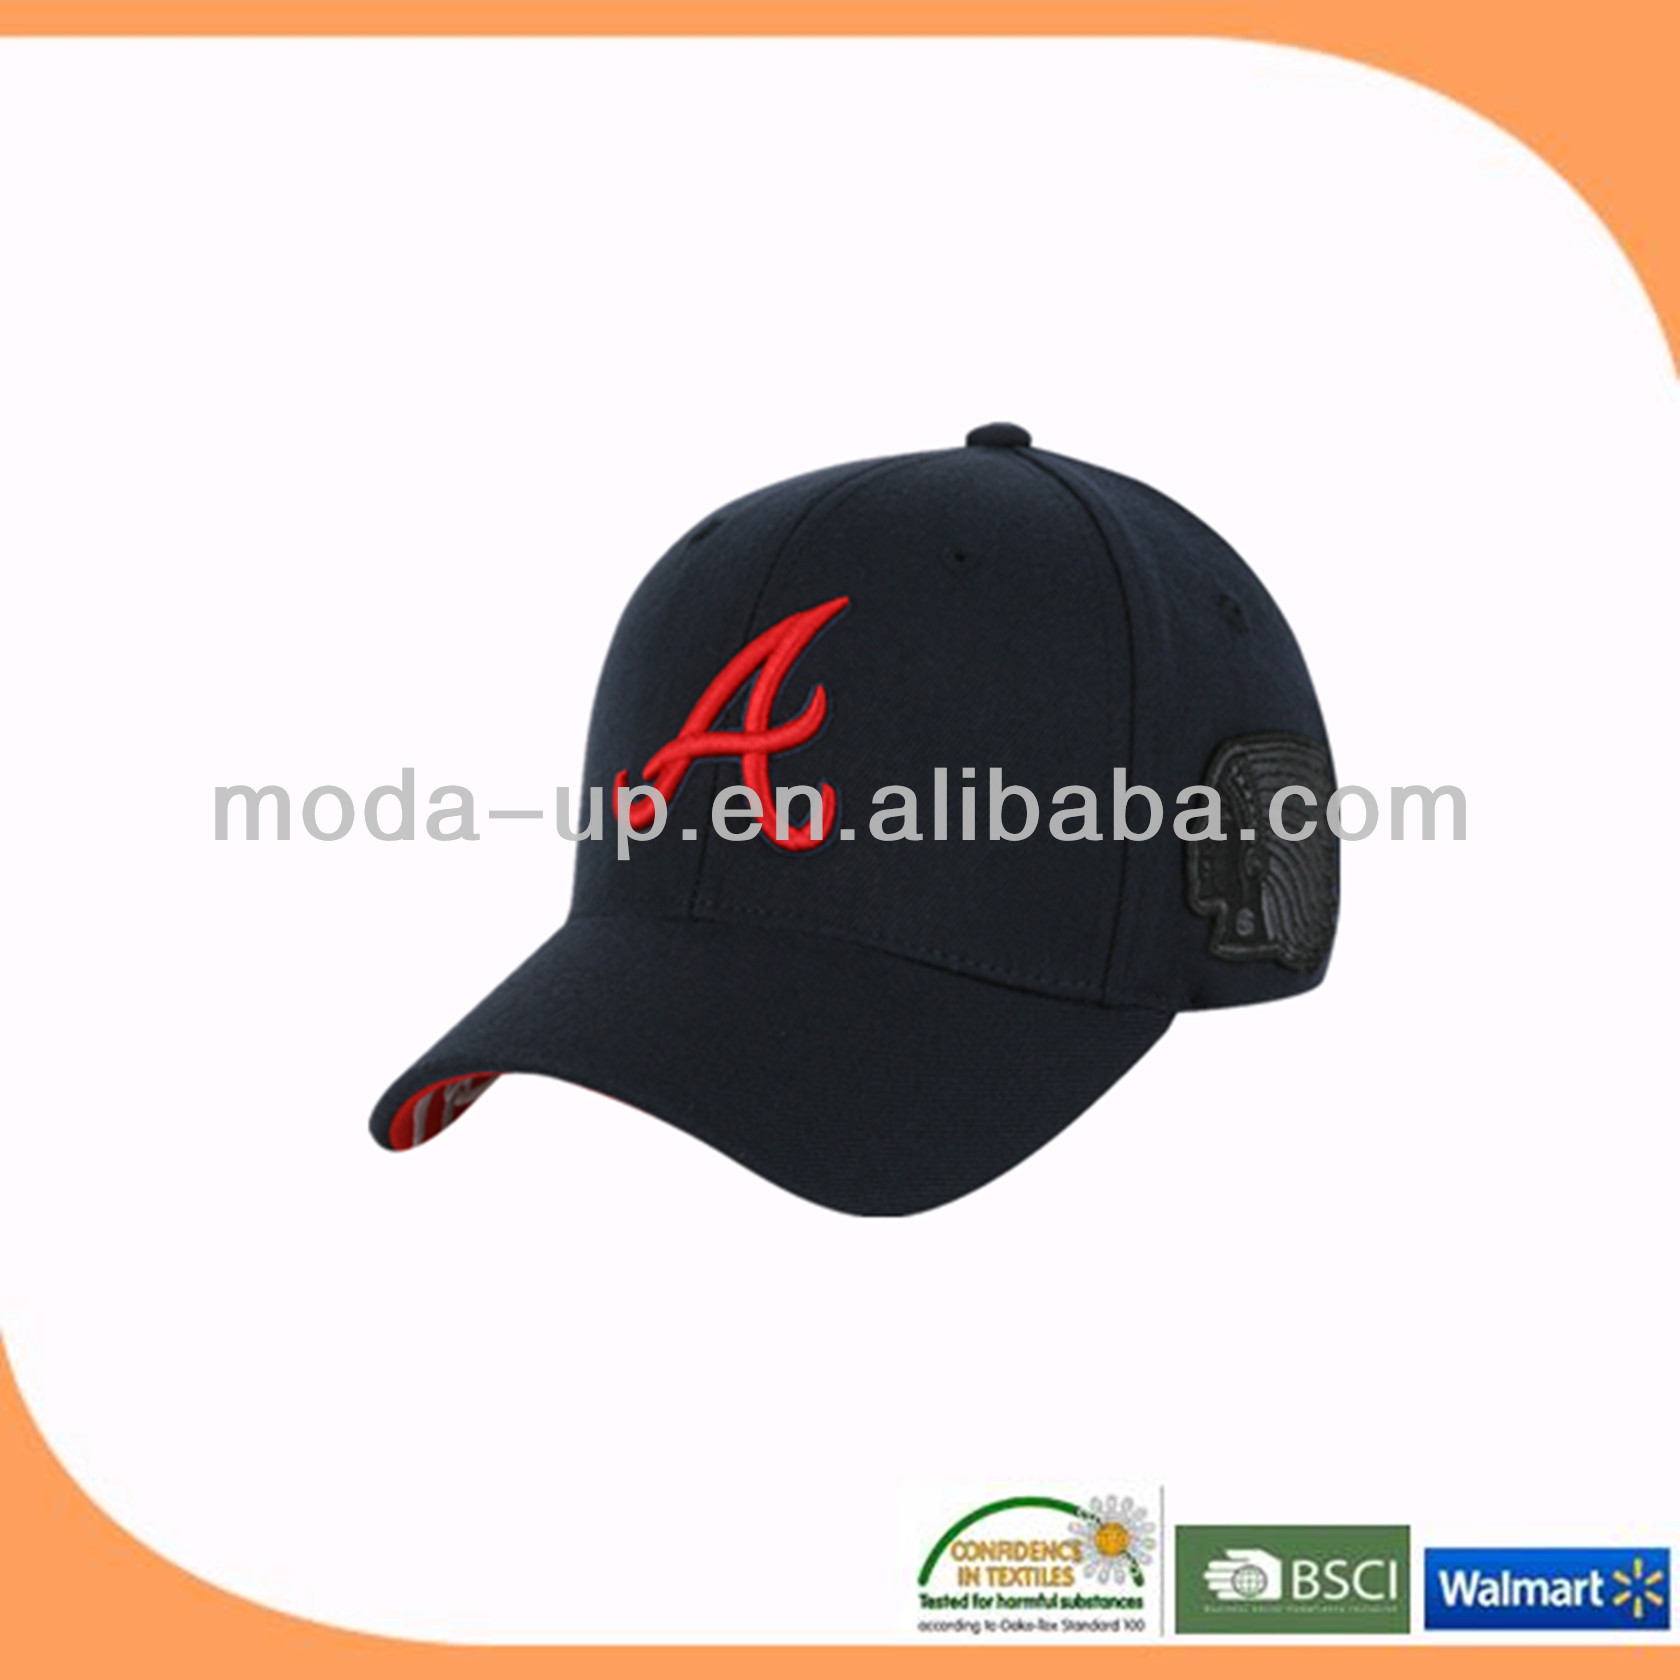 made in china sample free baseball caps promotional baseball cap promotional baseball cap